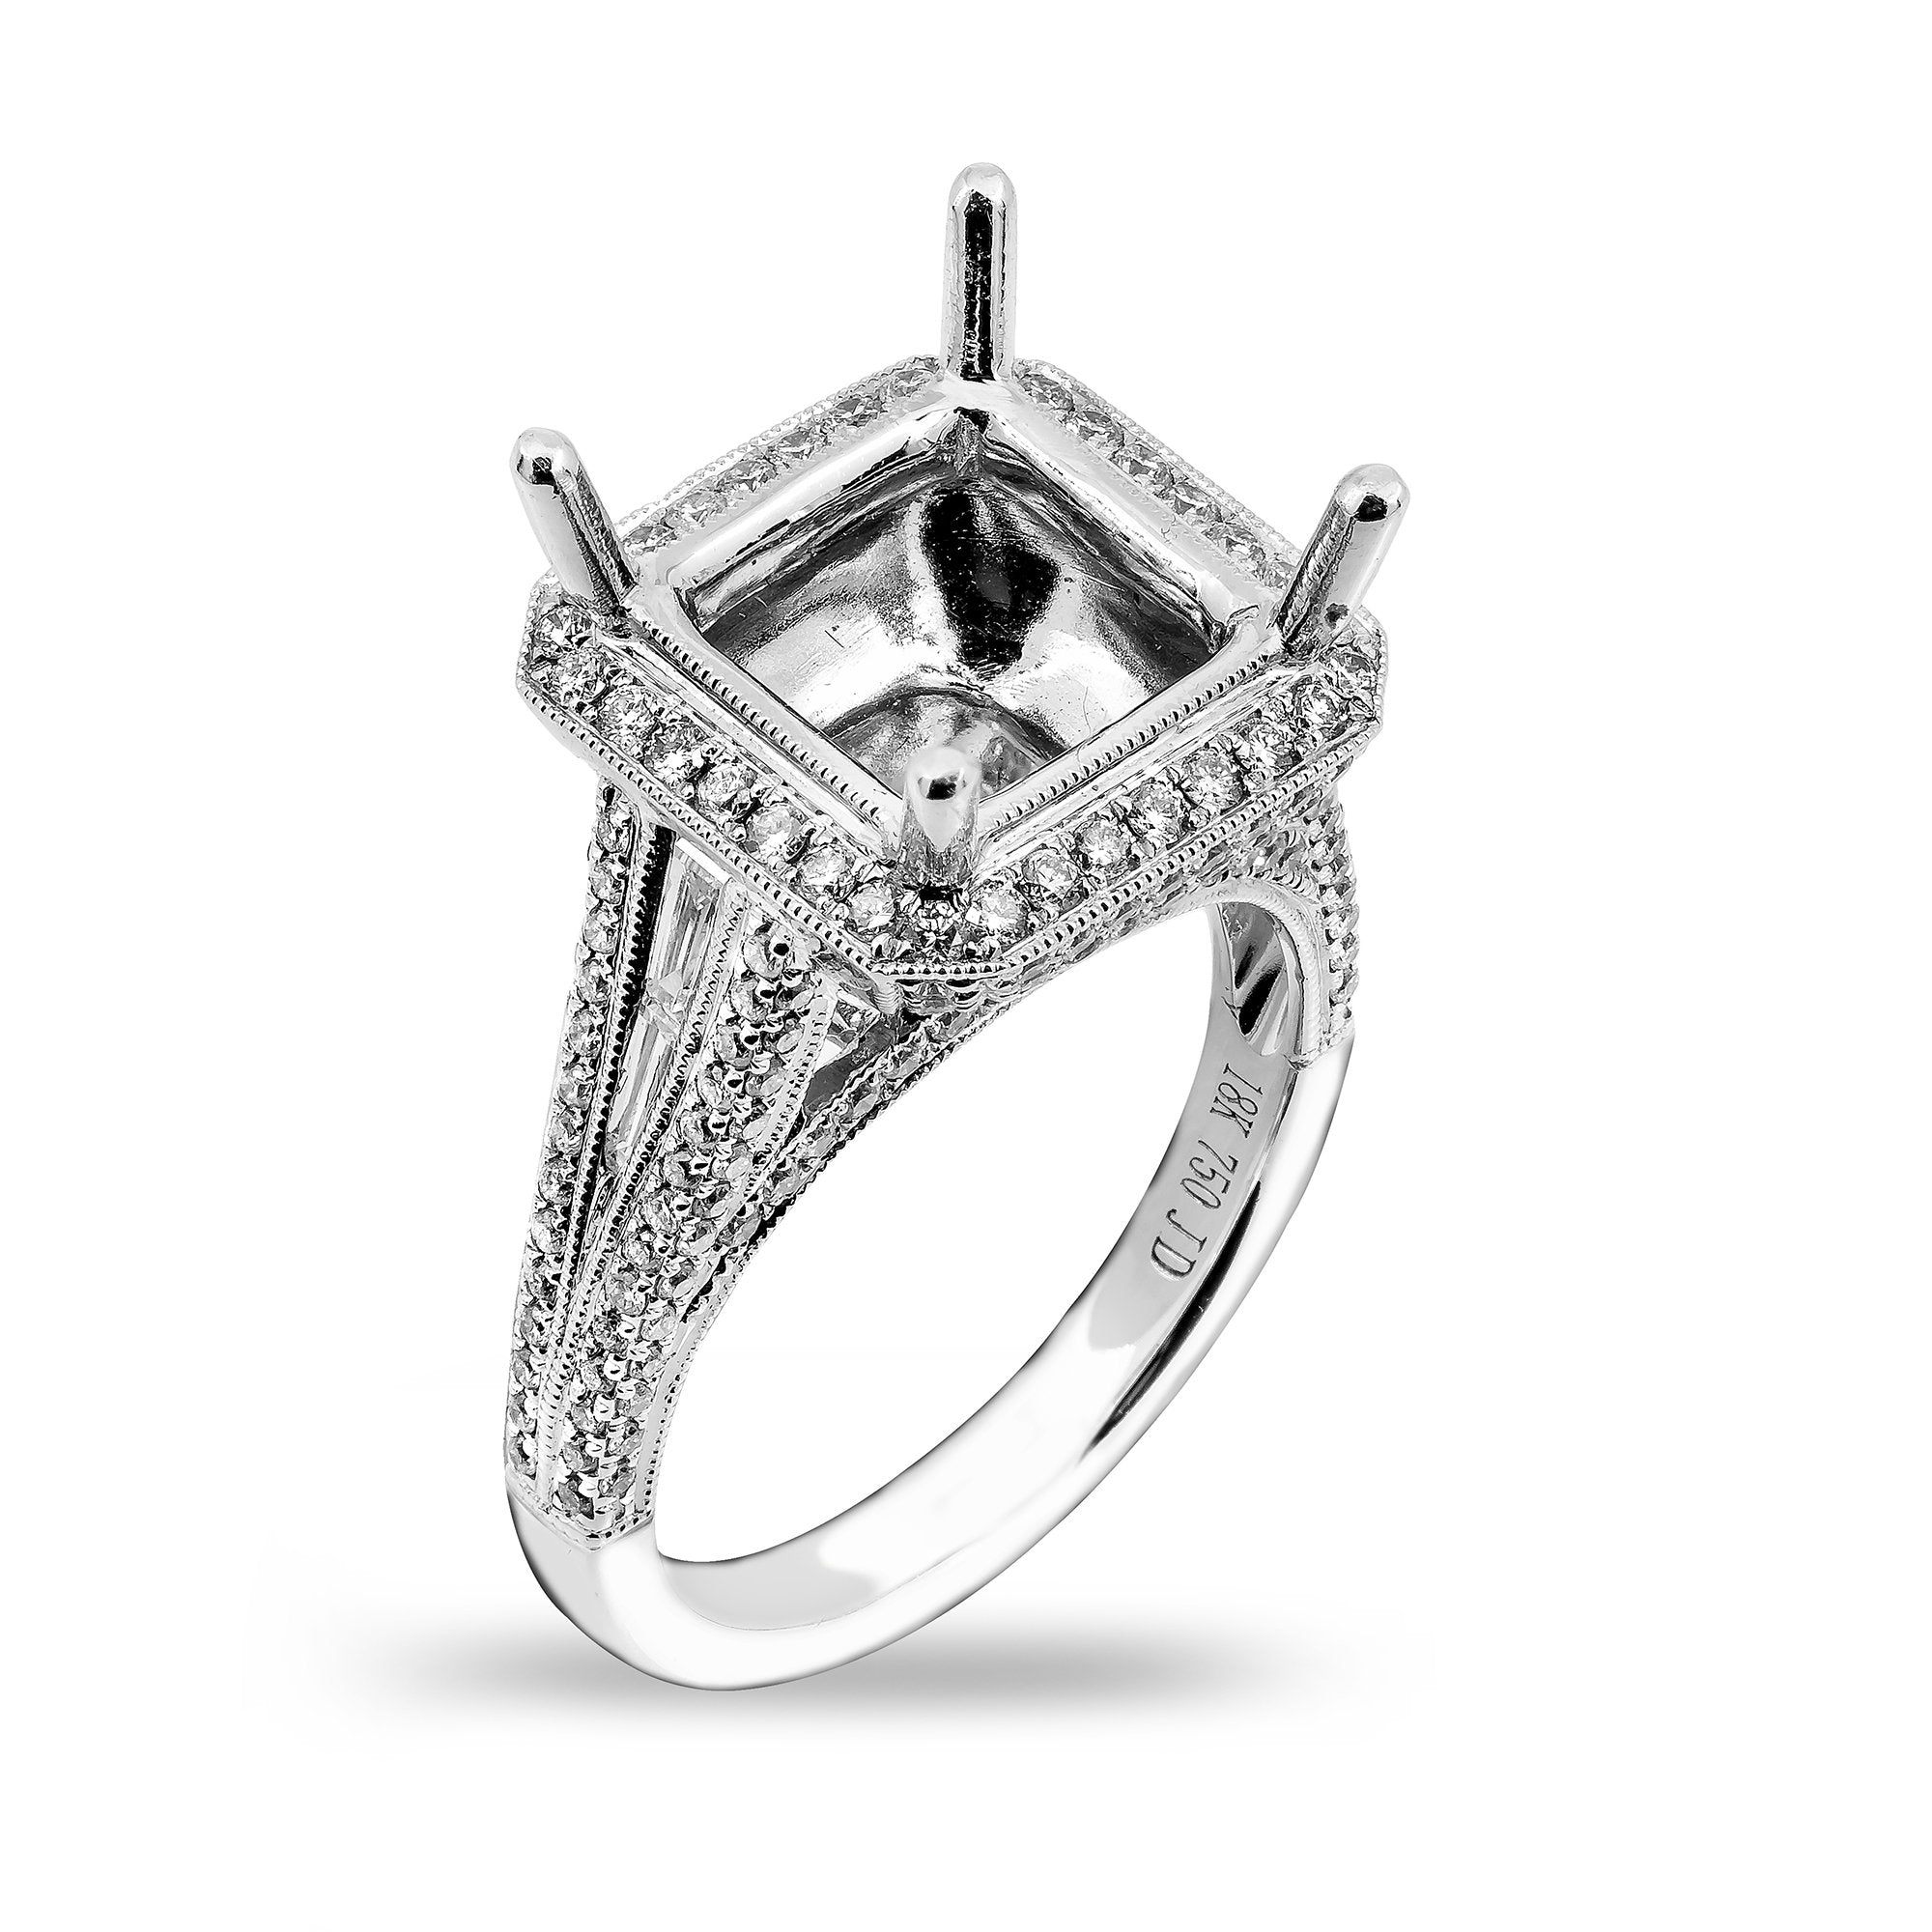 18K White Gold Semi-Mounting Women's Ring With 1.50 CT Diamonds